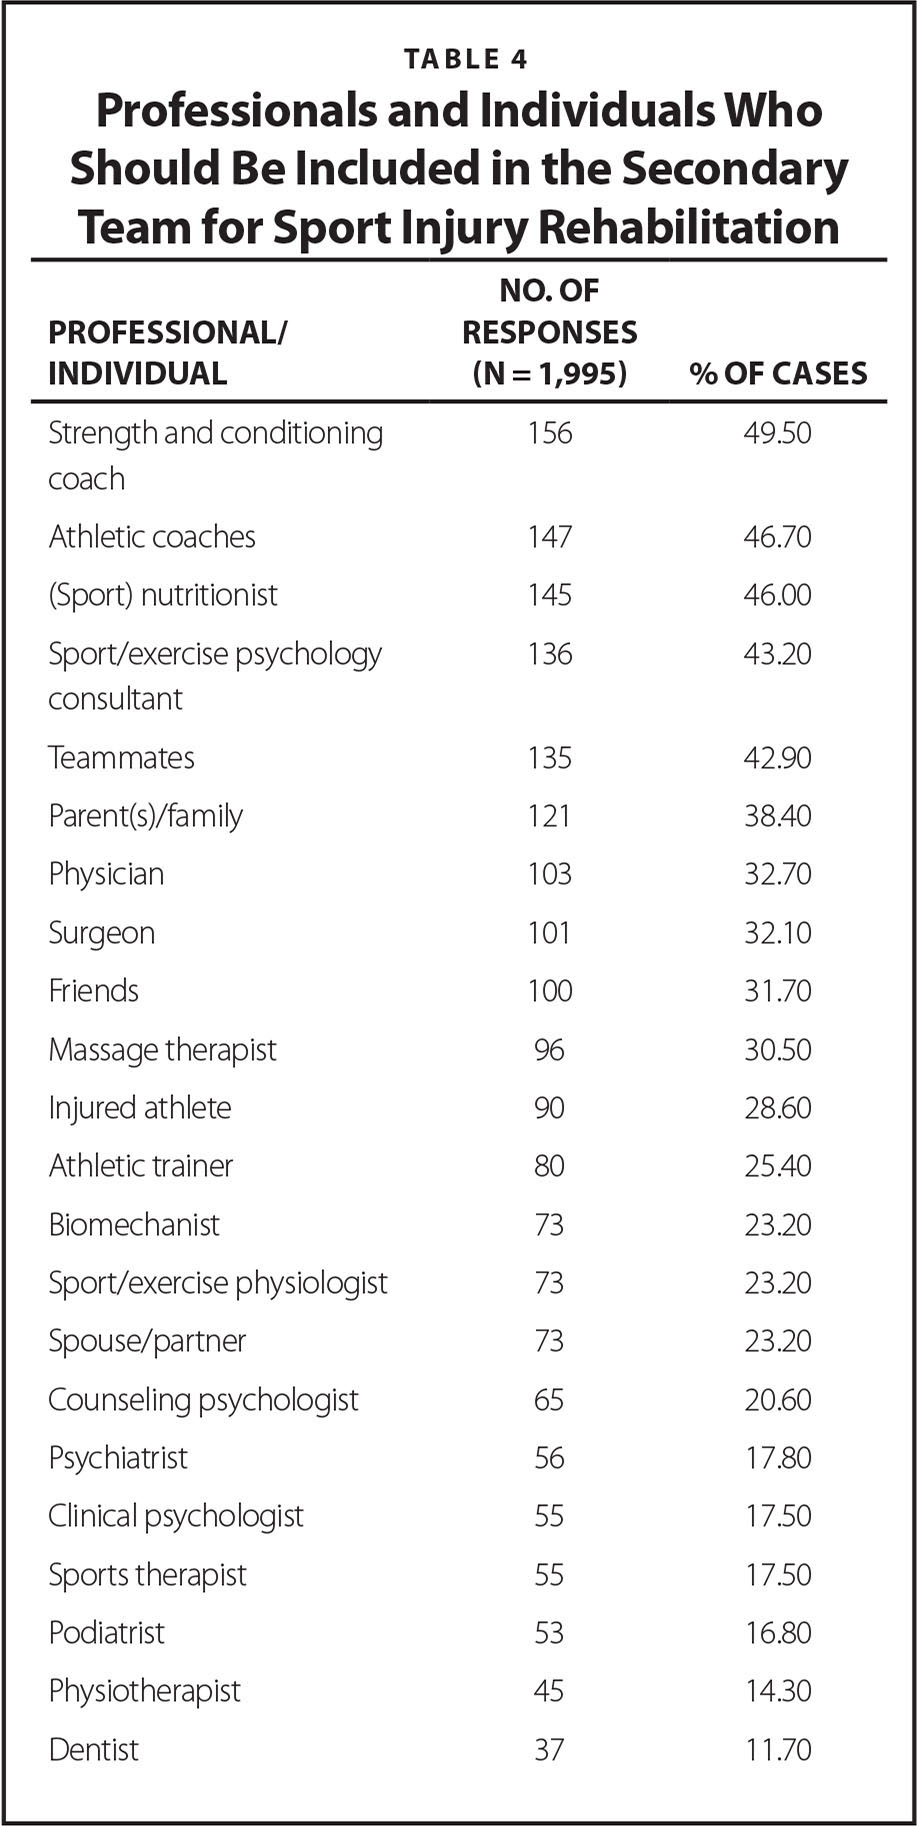 Professionals and Individuals Who Should Be Included in the Secondary Team for Sport Injury Rehabilitation